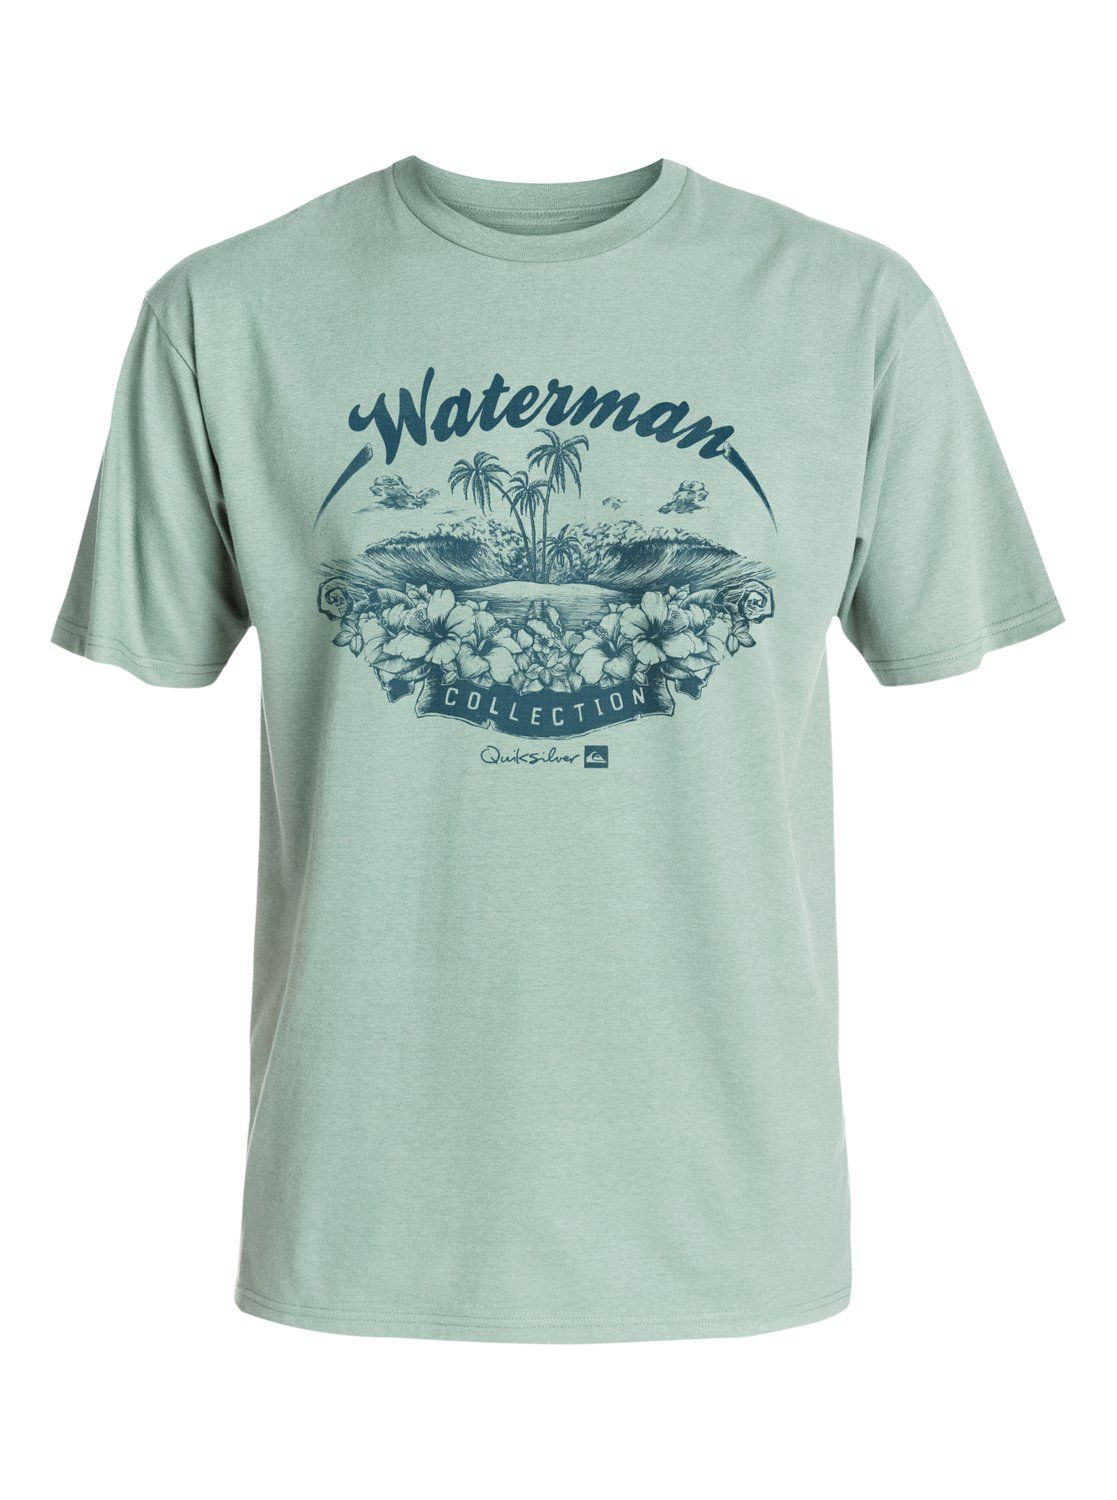 Mens Paradise Island Tee   Surf outfit, Tees, Men